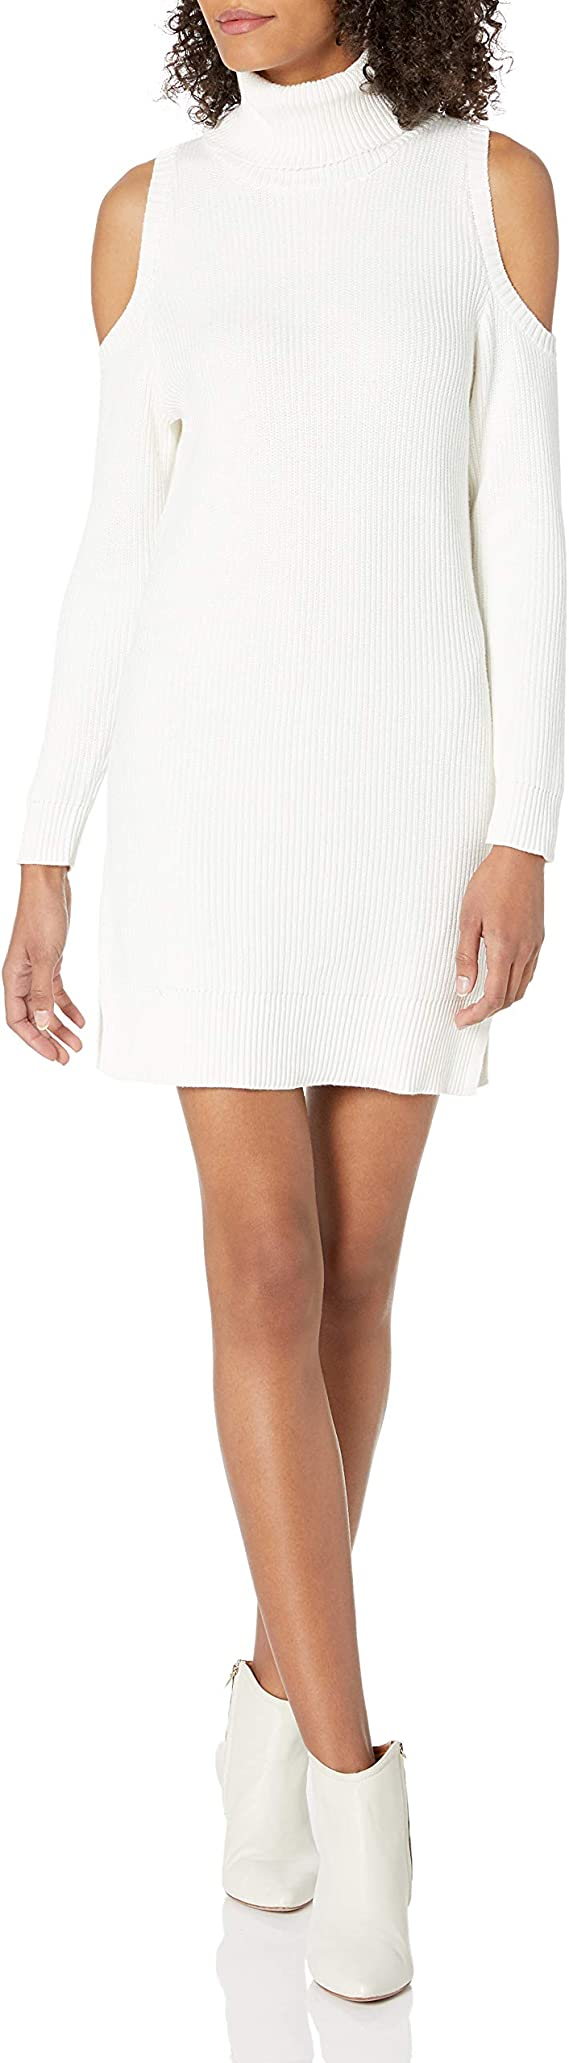 kensie Women's Cotton Blend Cold Shoulder Dress